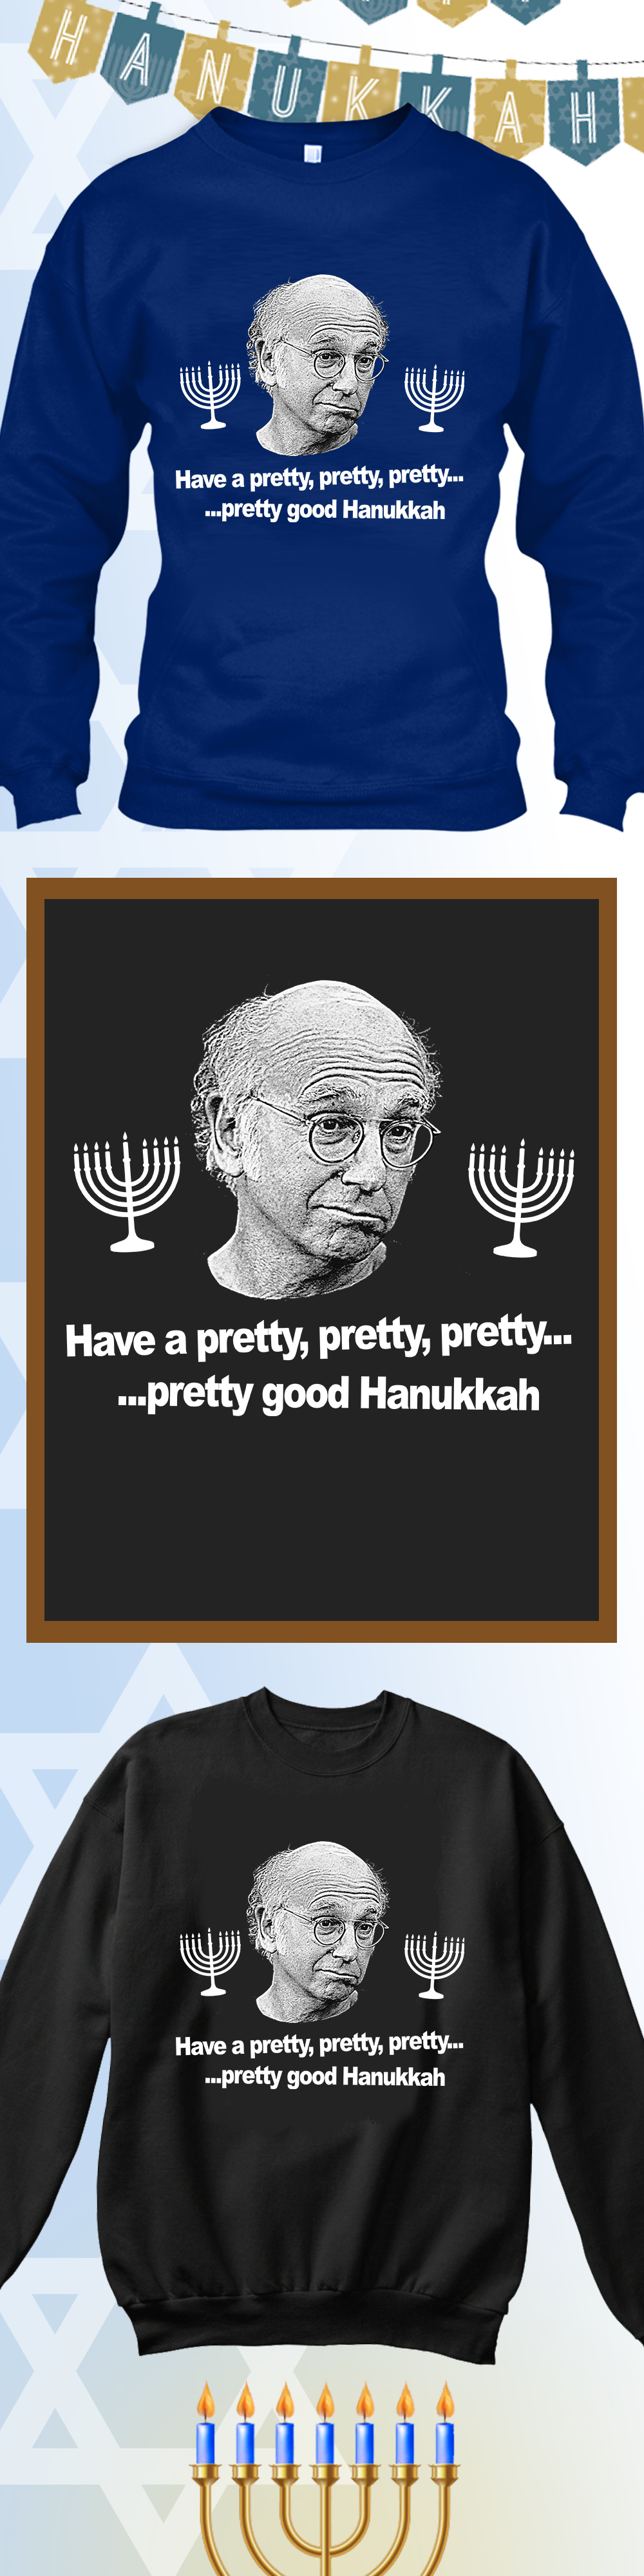 Larry David Hanukkah In 2018 Ugly Christmas Sweaters Pinterest